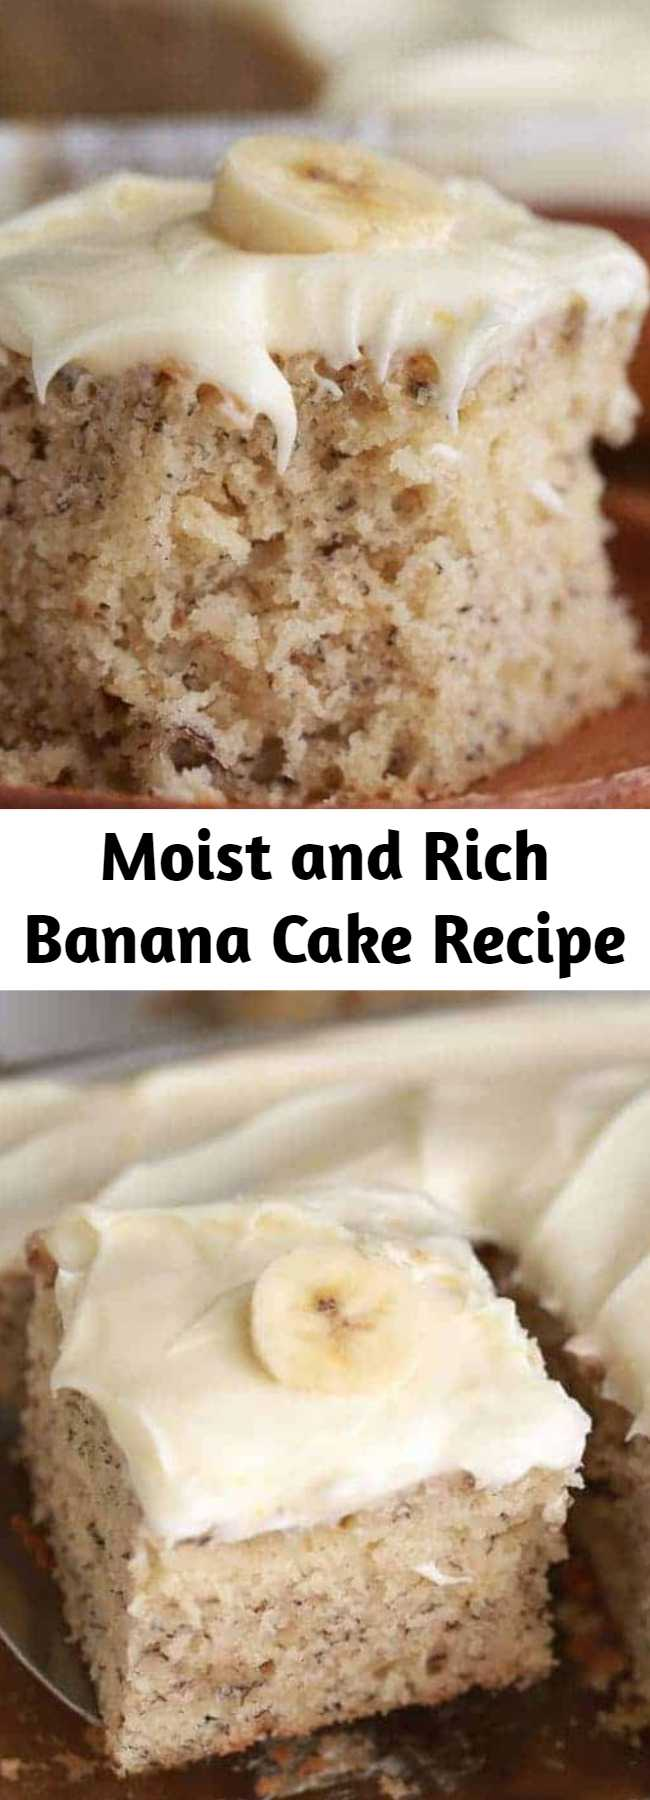 Moist and Rich Banana Cake Recipe - This Banana Cake is soft, moist and rich all at the same time! Once cooled this cake is topped with a totally irresistible lemon cream cheese frosting for a perfect dessert your family will love.